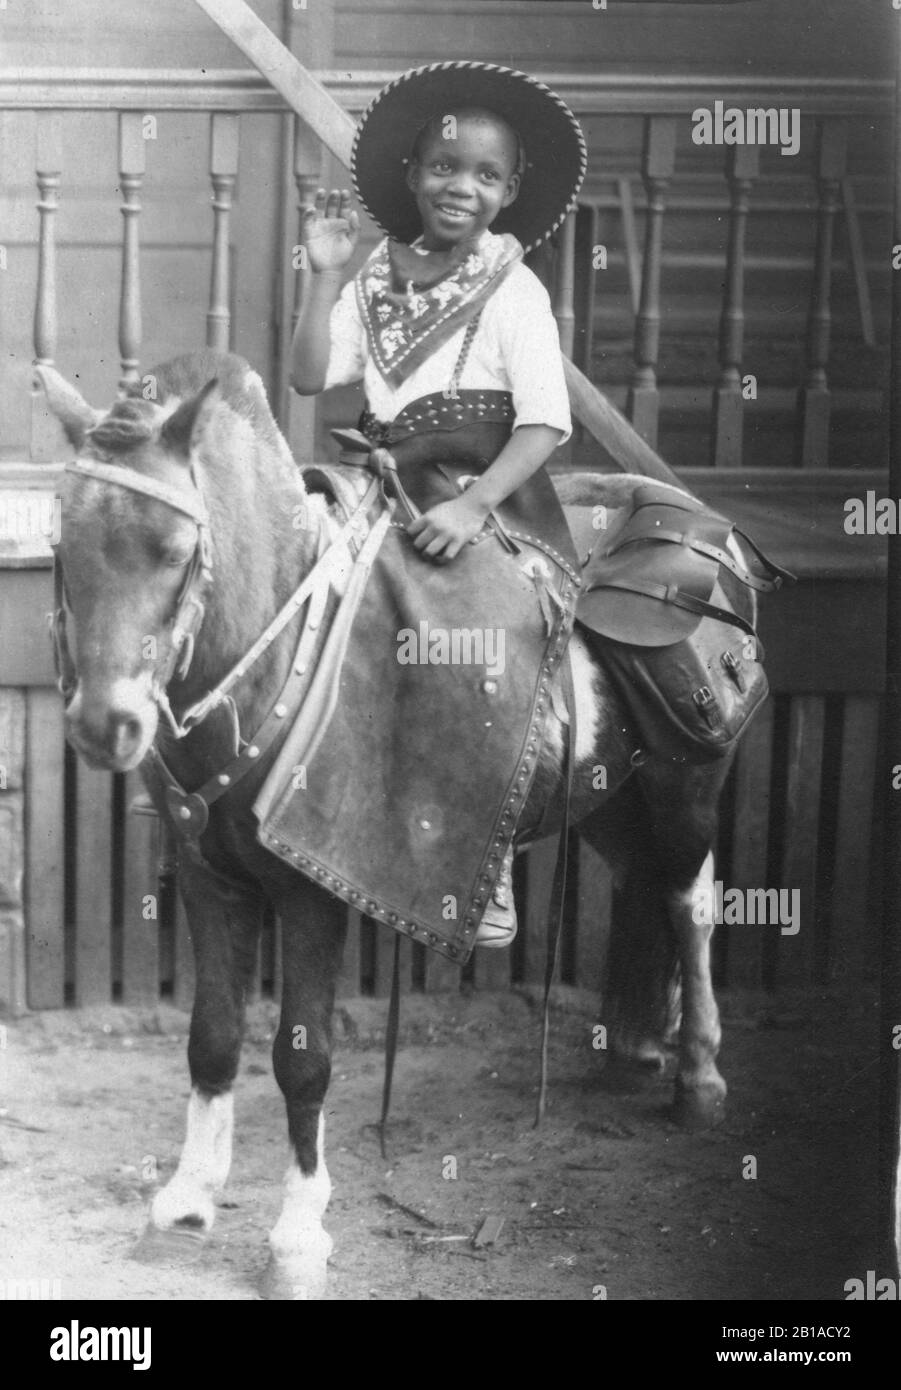 Horse Riding Outfit Vintage High Resolution Stock Photography And Images Alamy